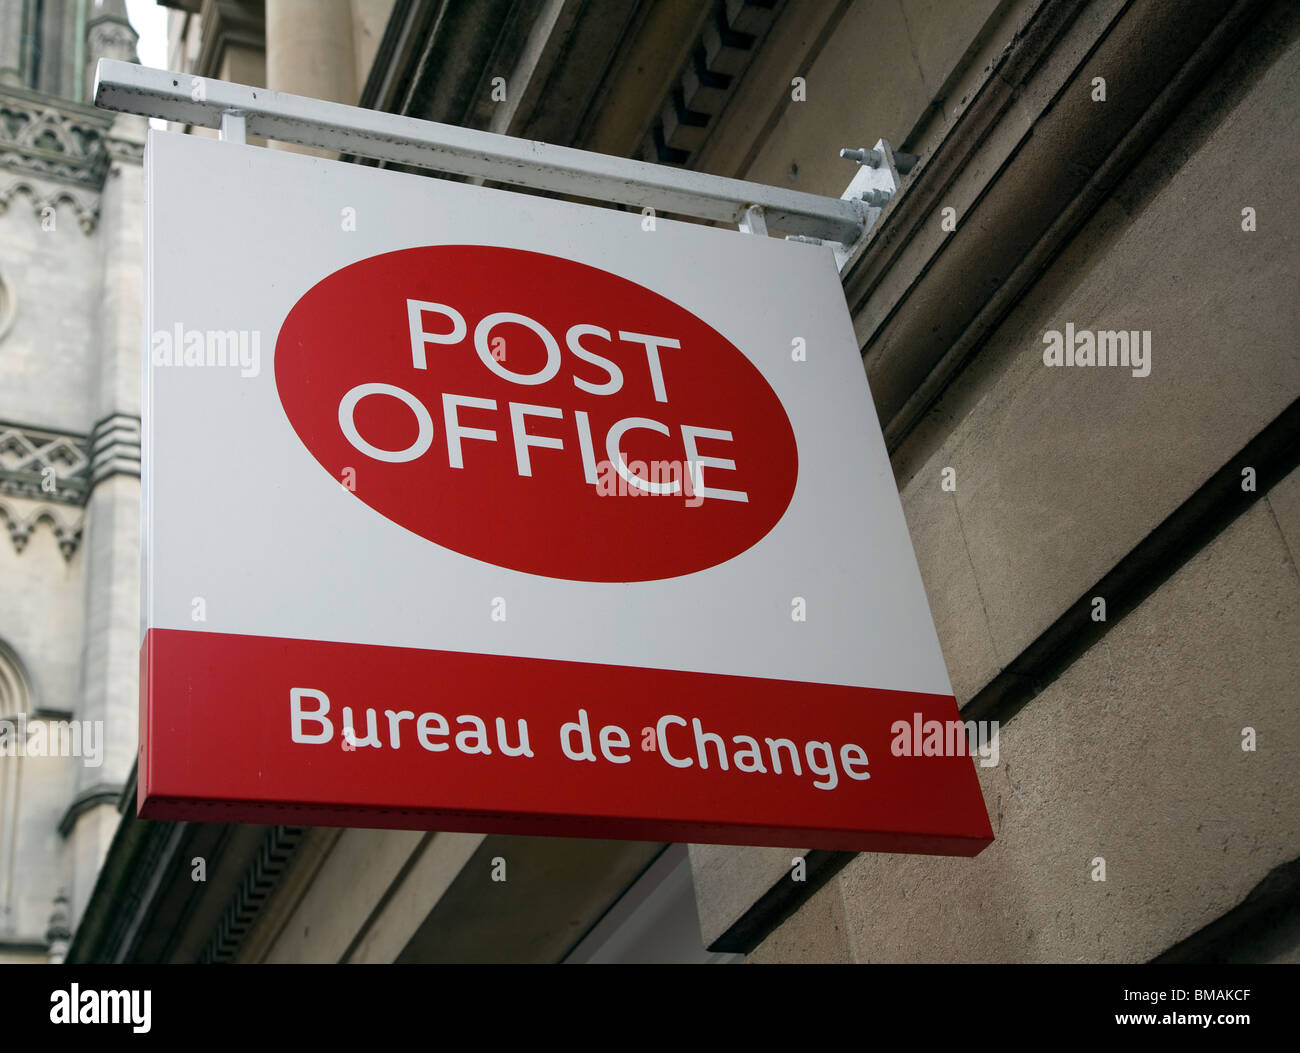 Post Office Bureau de Change sign - Stock Image